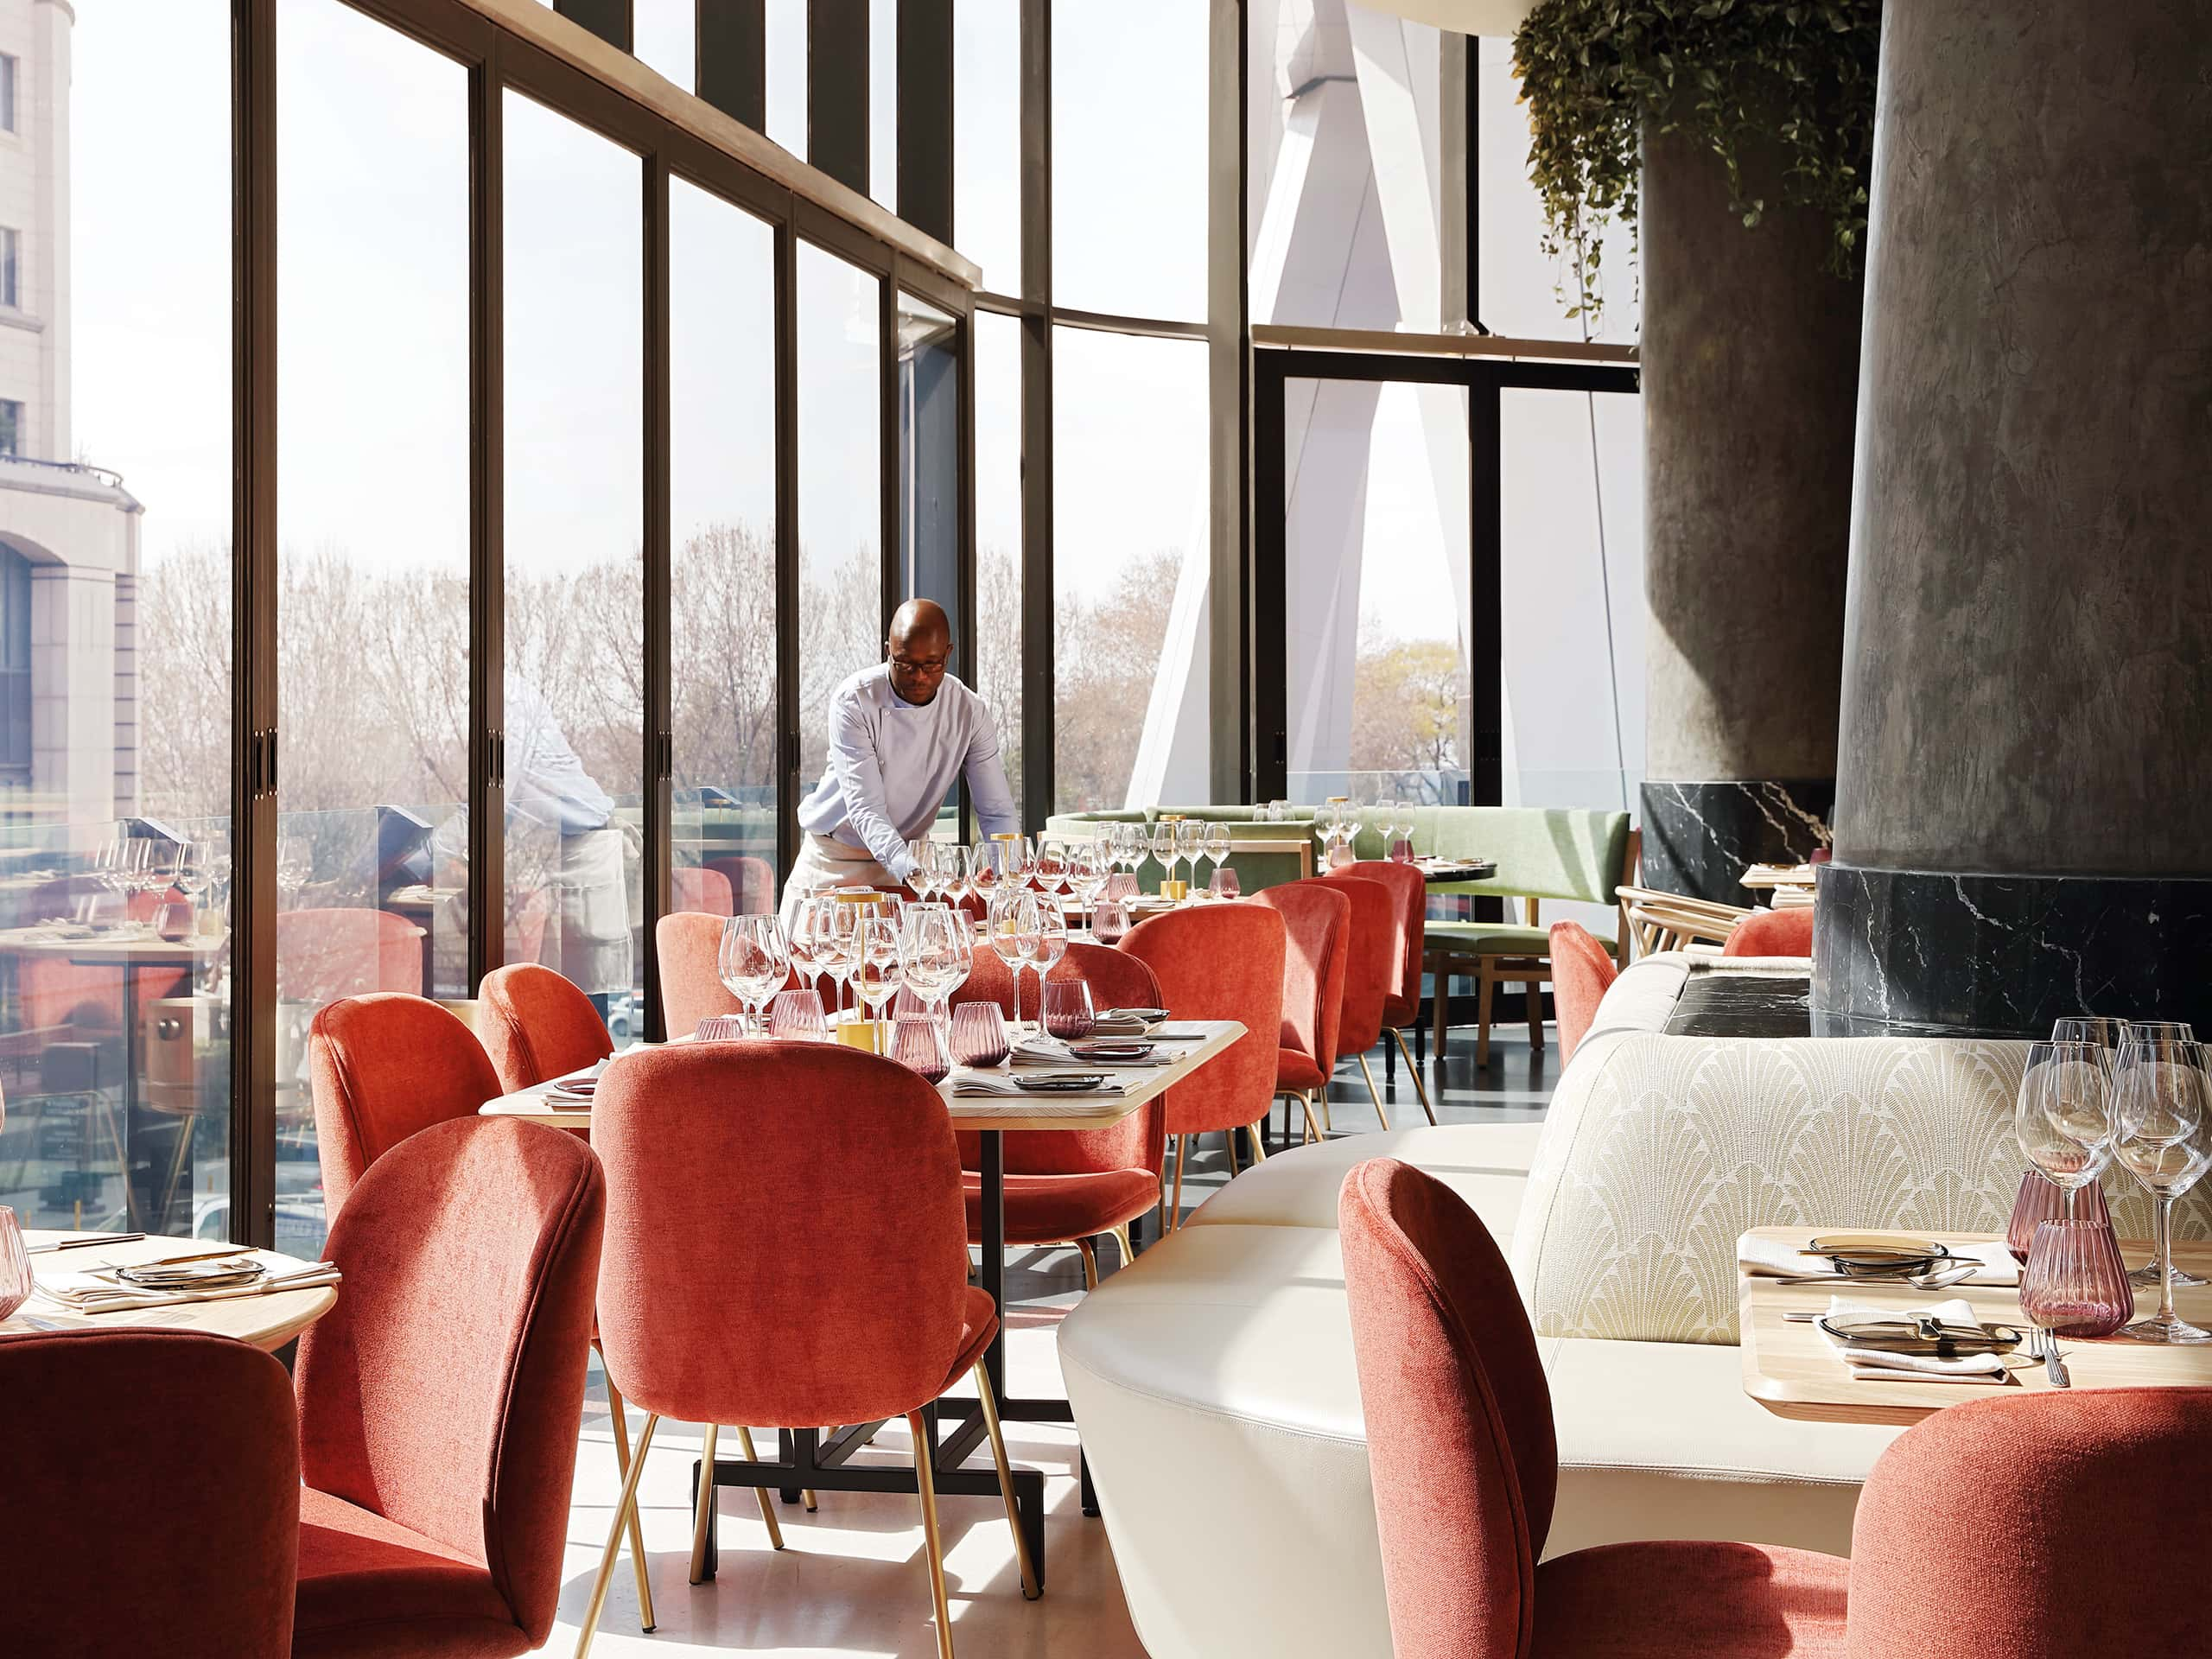 Waier setting tables at Saint Restaurant in Johannesburg. Photograph by Elsa Young.